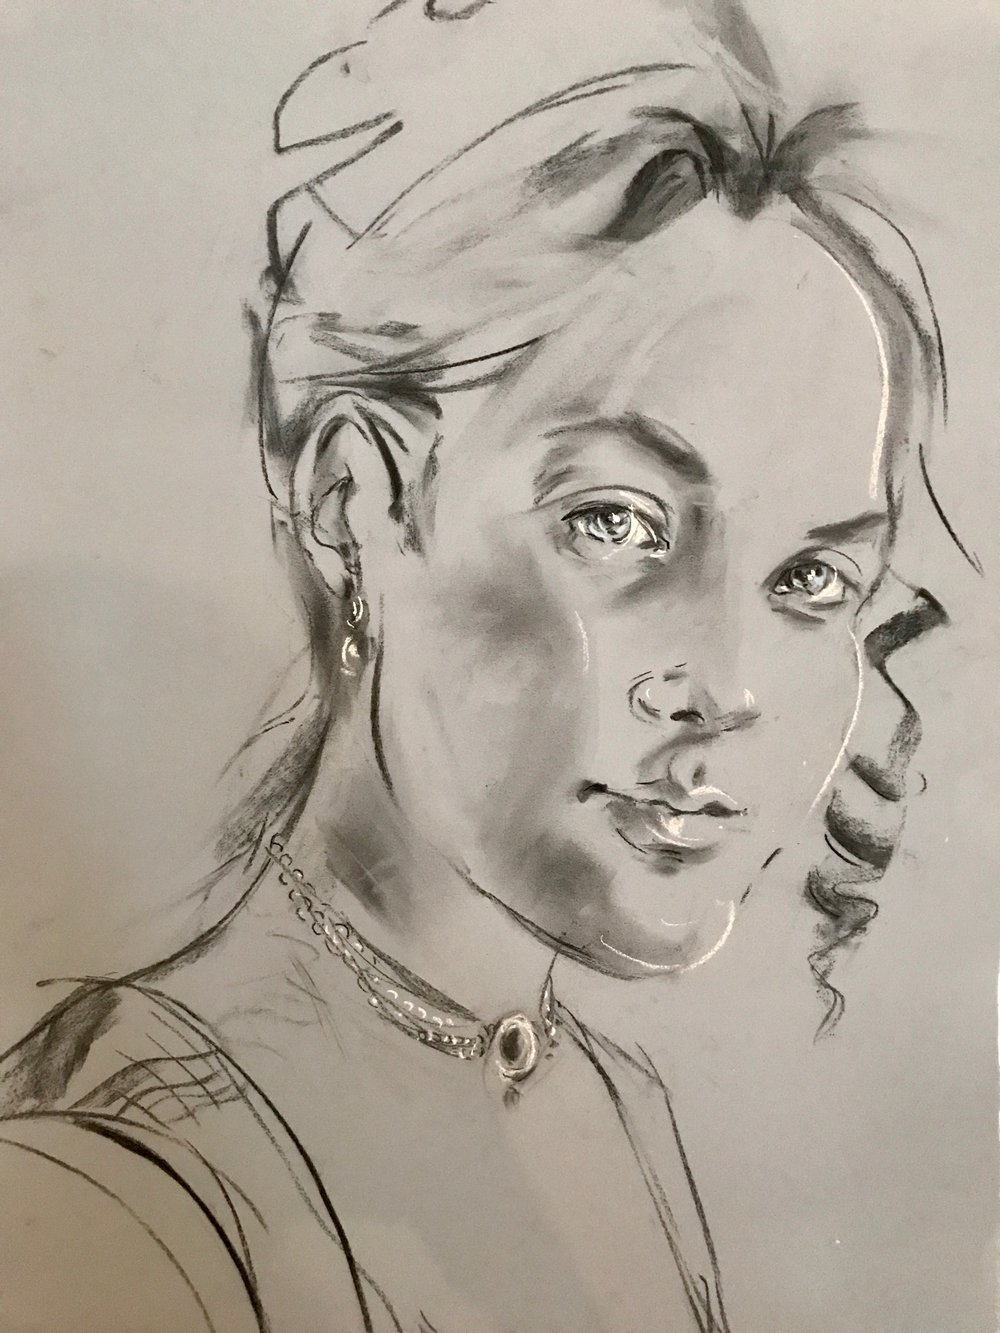 Susannah Sayre Stewart, the fourth wife of Capt. David Hand, as imagined by artist Sabrina Streeter.